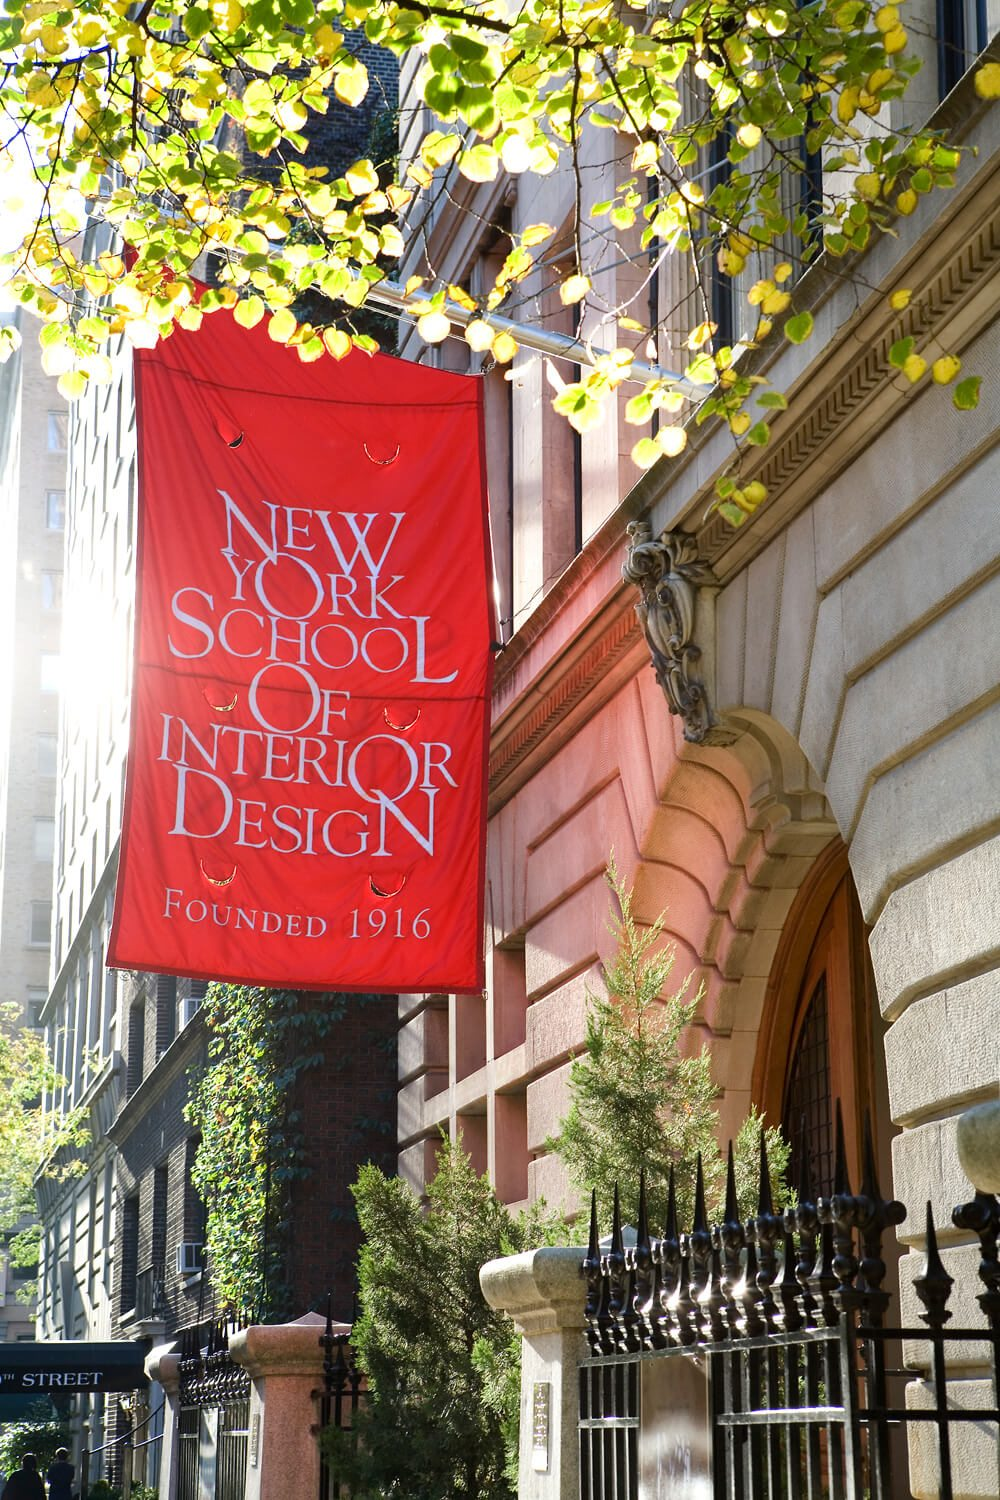 Top 10 interior design schools in the us degreequerycom for Interior decorating classes nyc